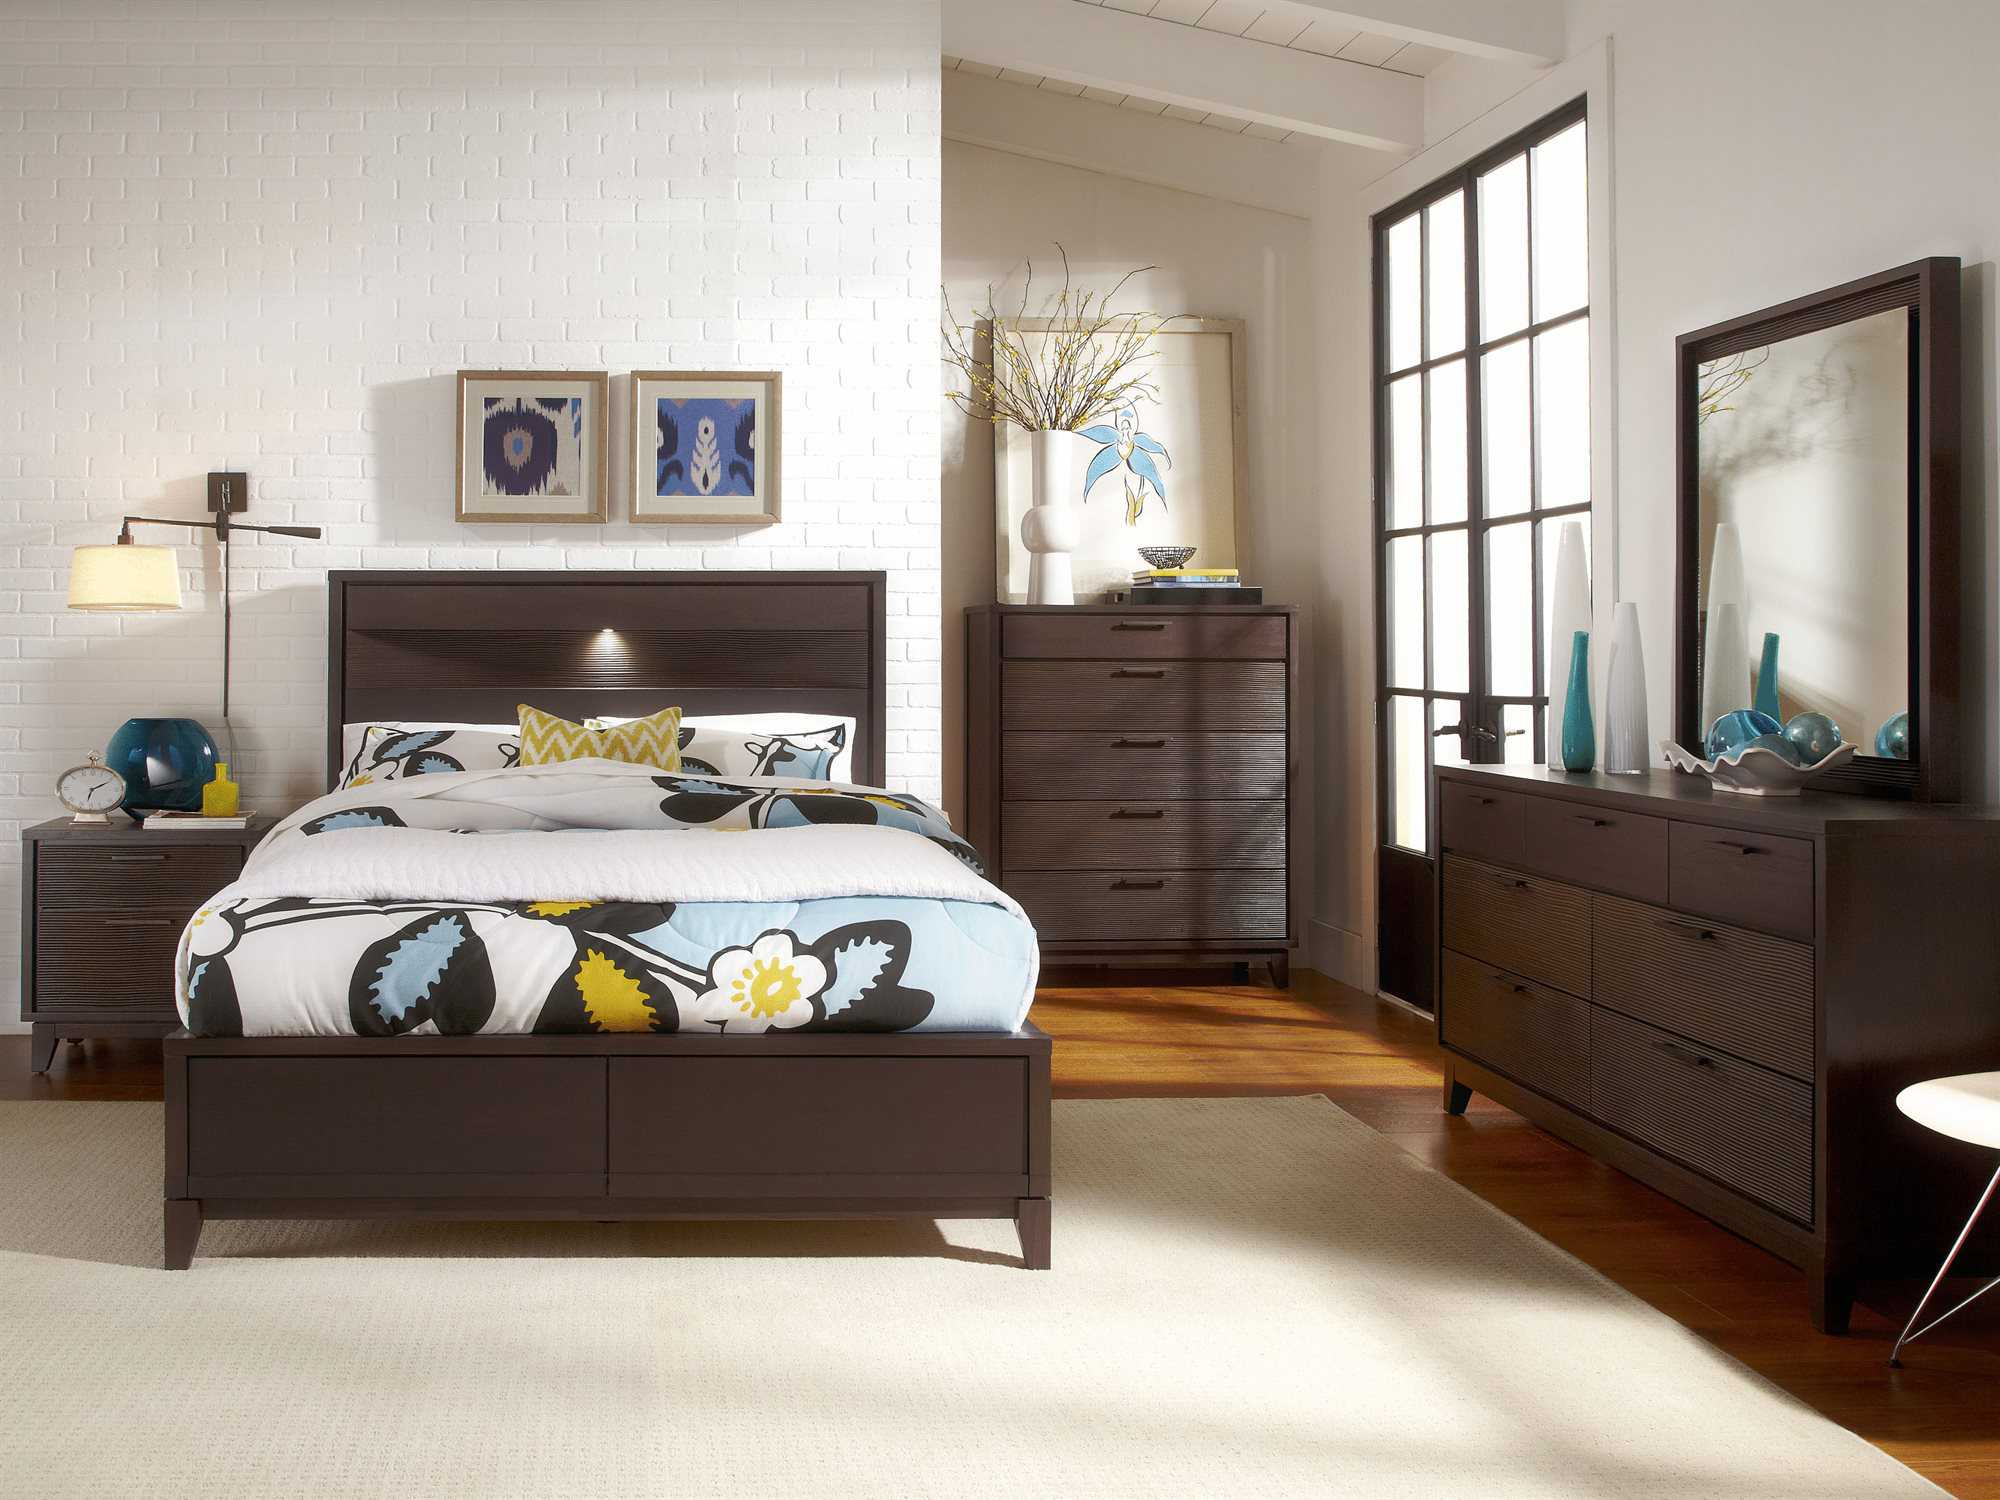 casana sierra panel bed bedroom set cx285500kqset